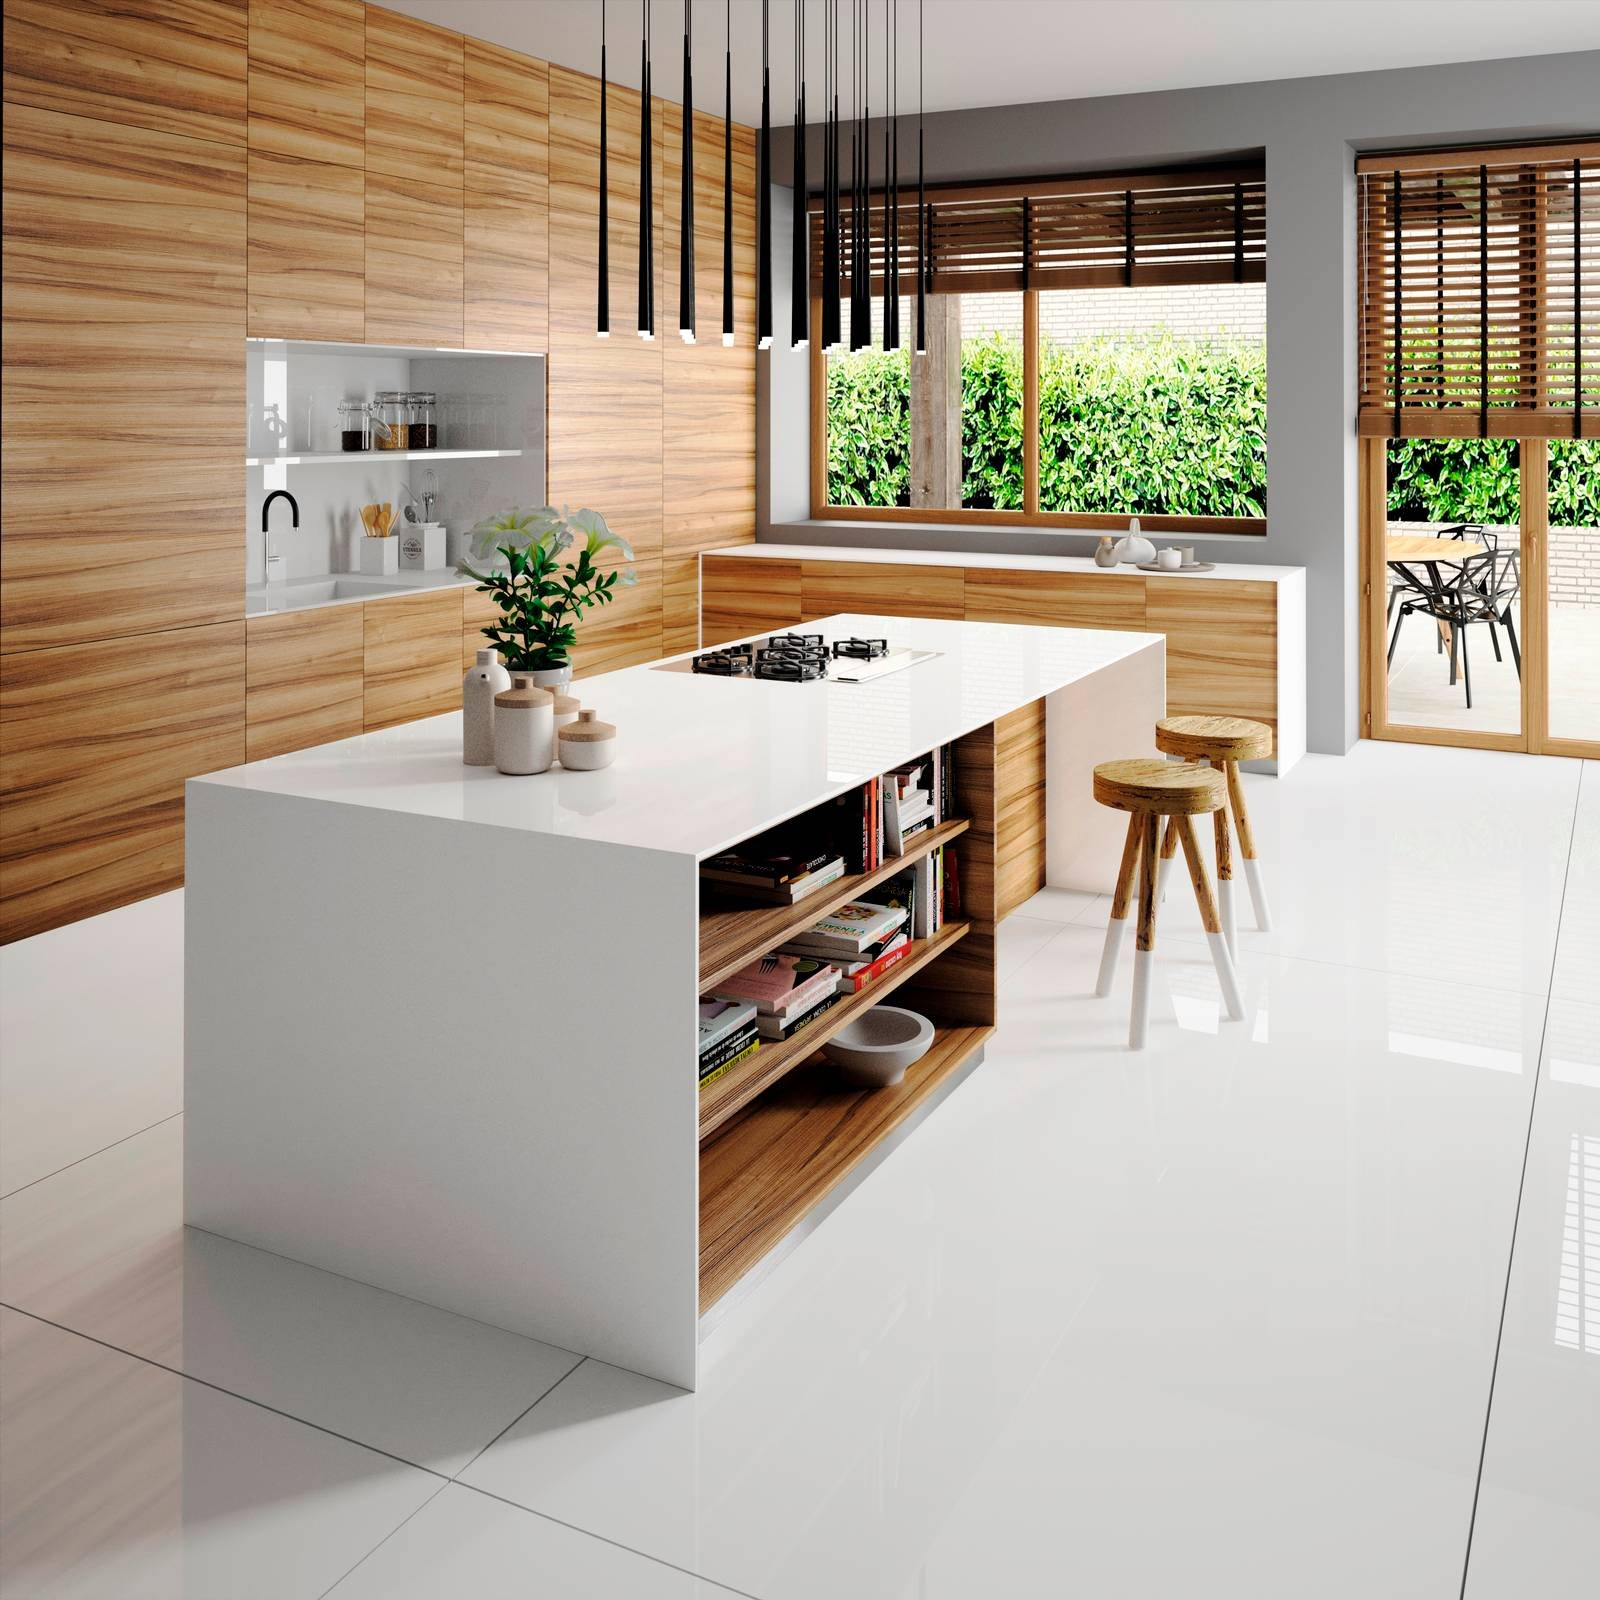 Silestone Kitchen   Iconic White Cucina Con Finestra